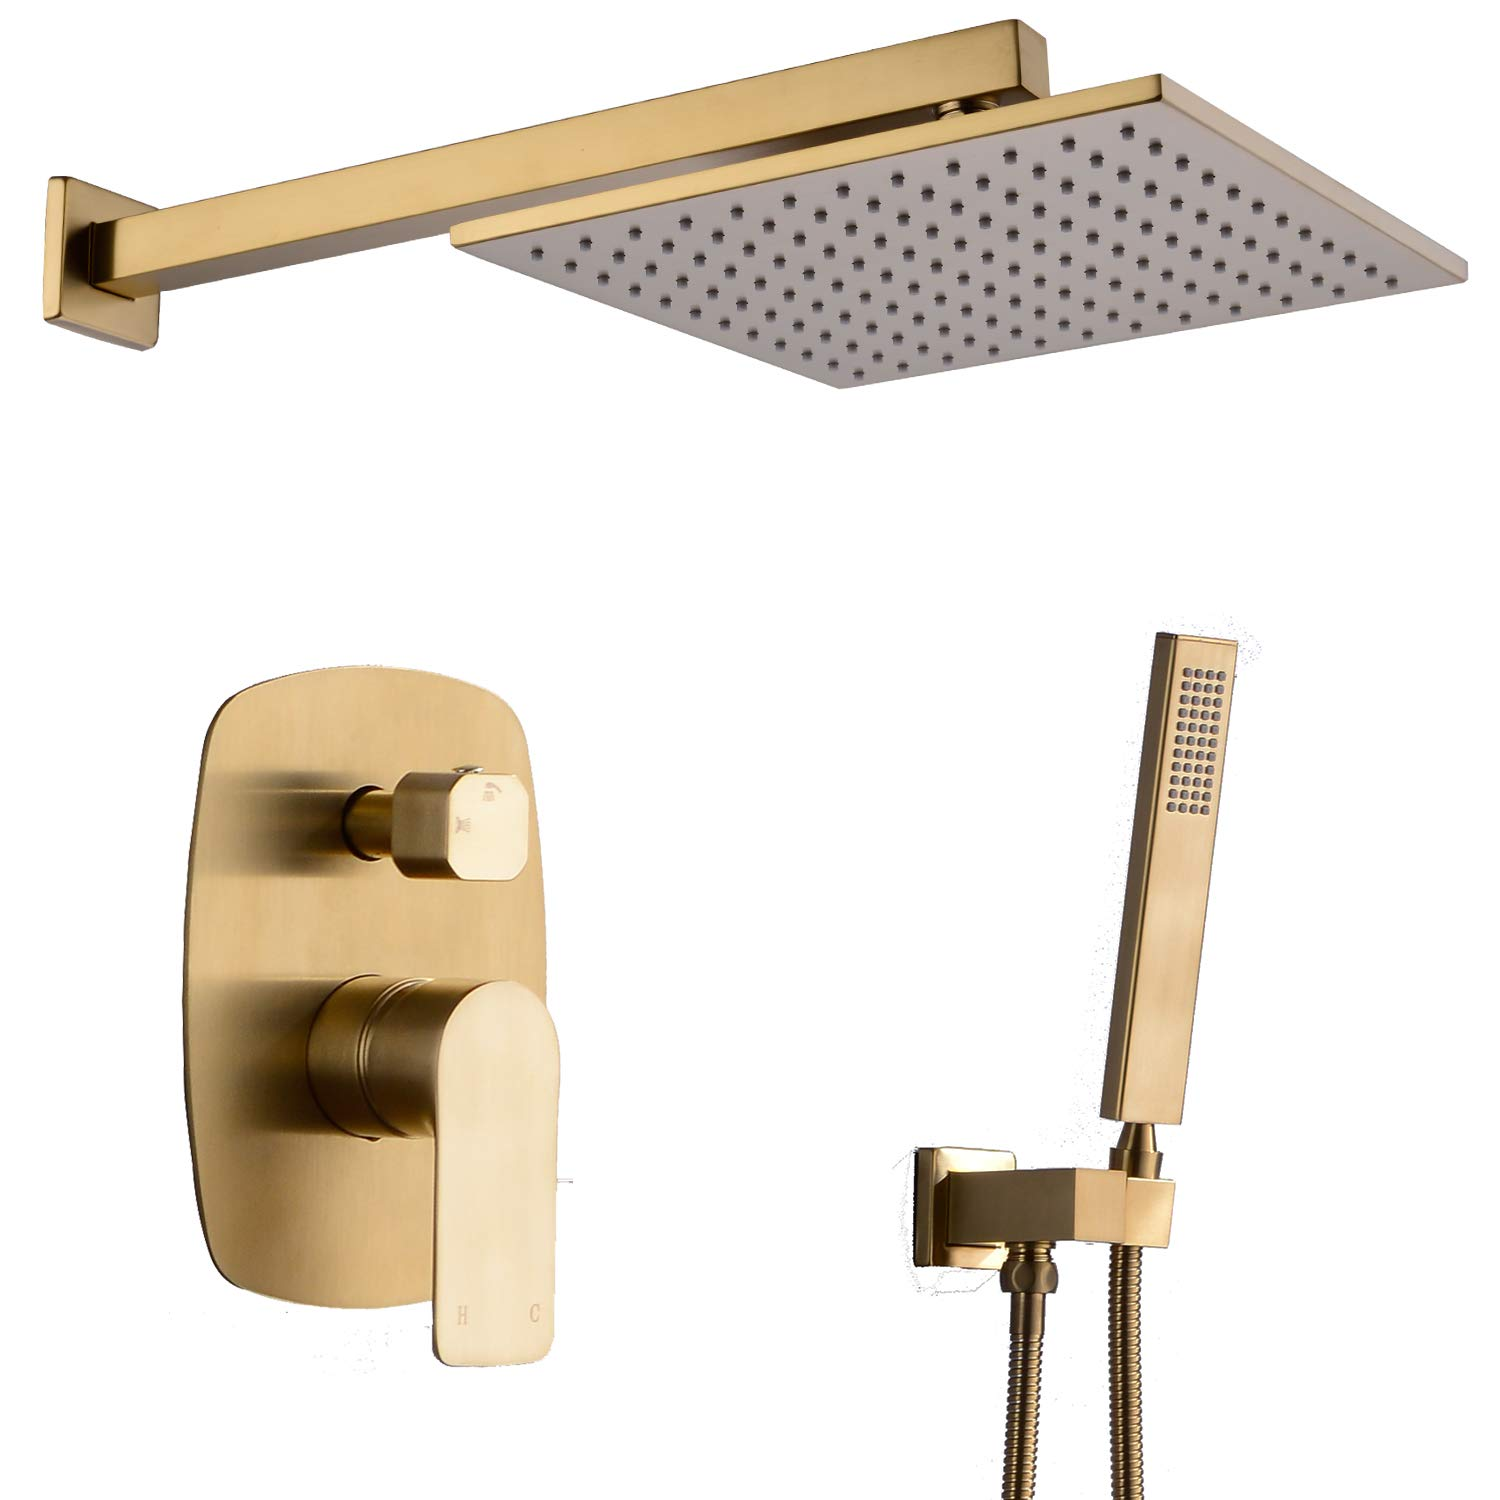 TRUSTMI Shower Faucet 12 inch Bathroom Luxury Rain Mixer Combo Set Wall Mounted Rainfall Shower Head System Brushed Gold, Contain Faucet Rough-in Valve Body and Trim